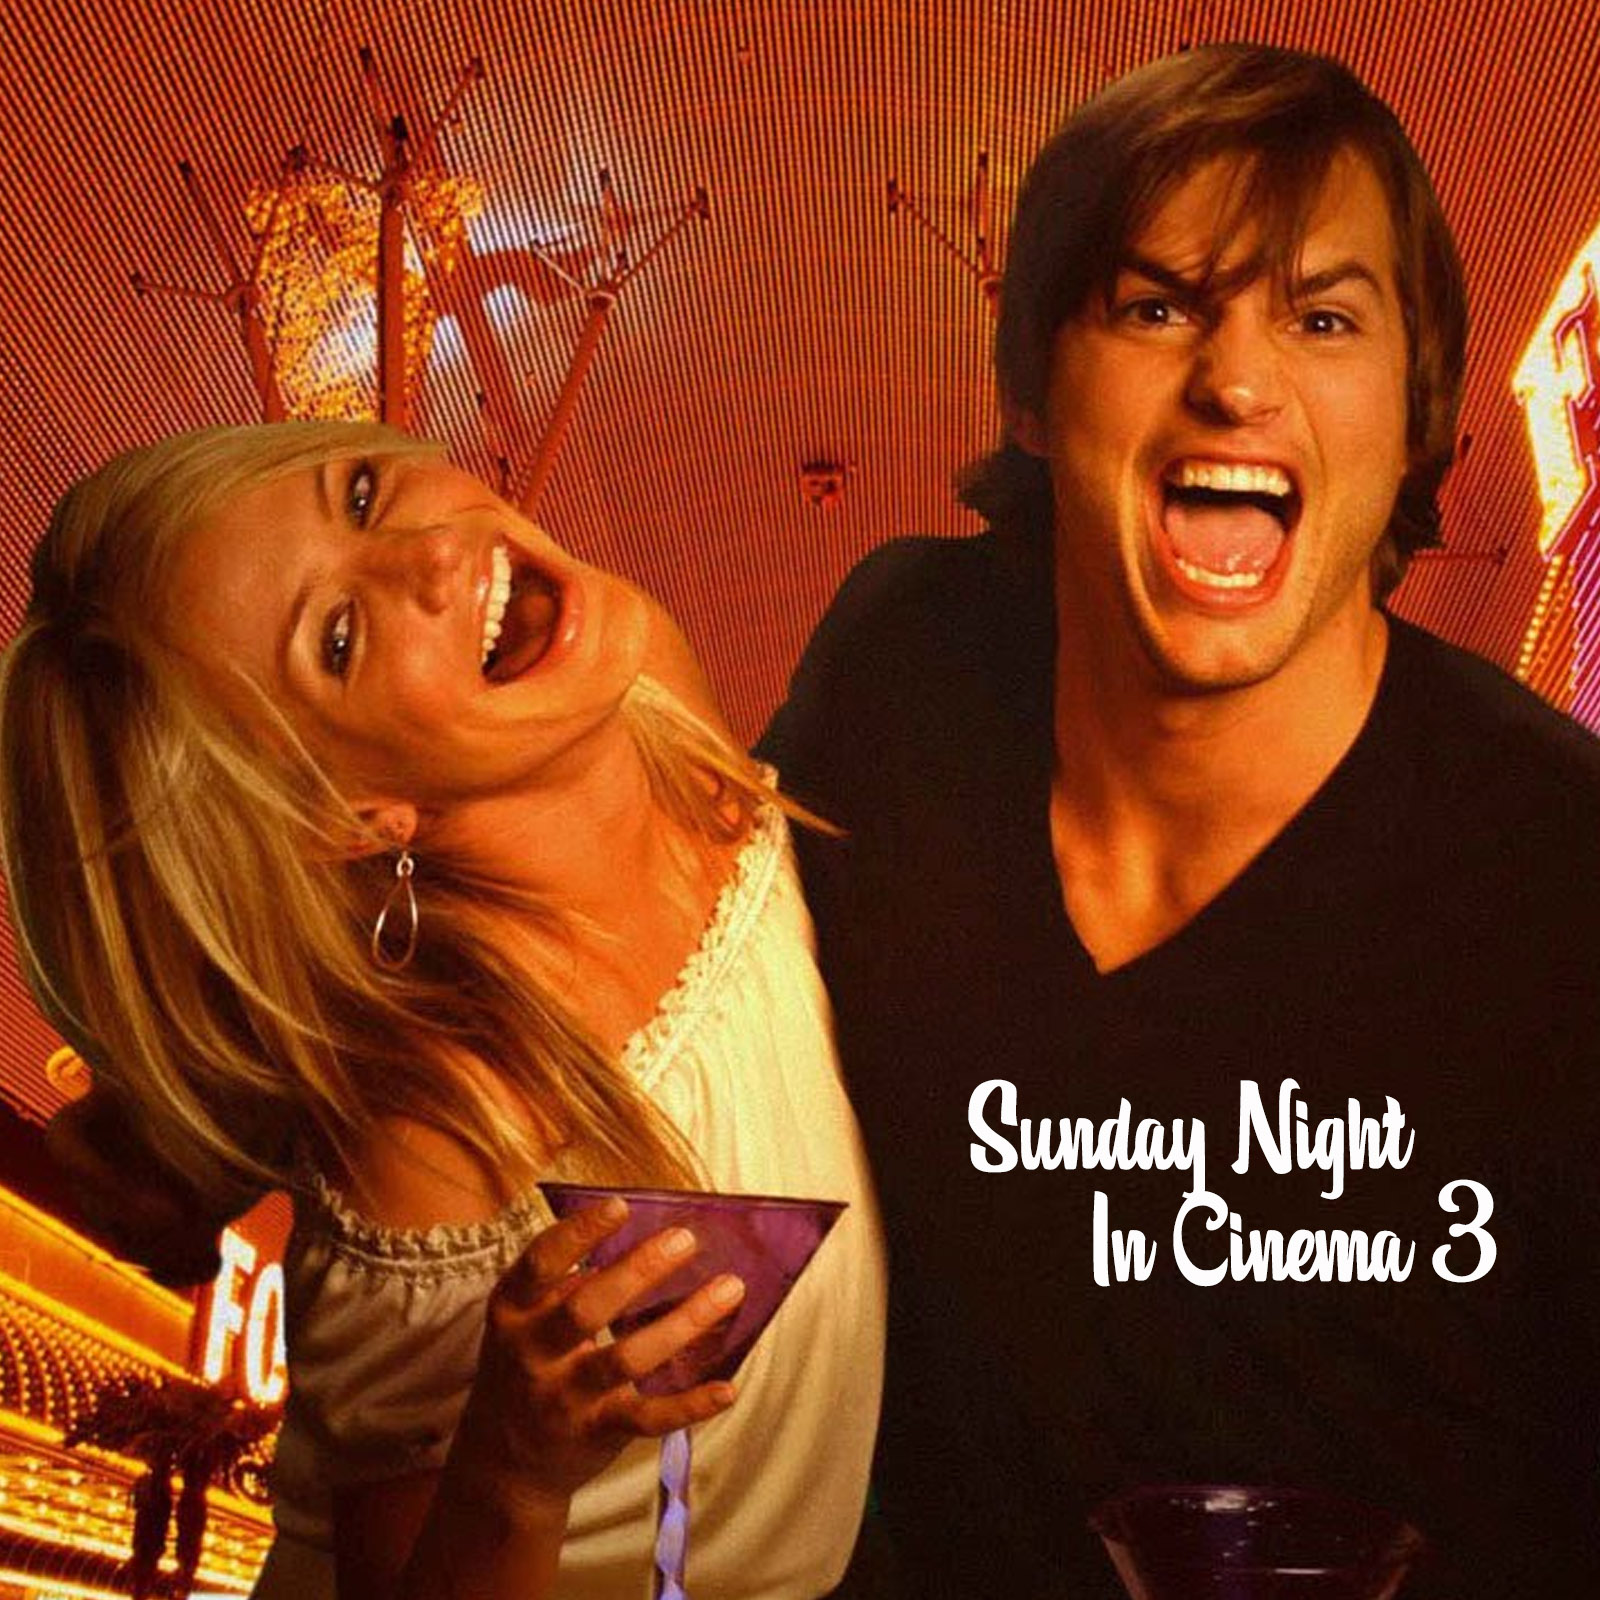 Sunday Night in Cinema 3 Episode 4